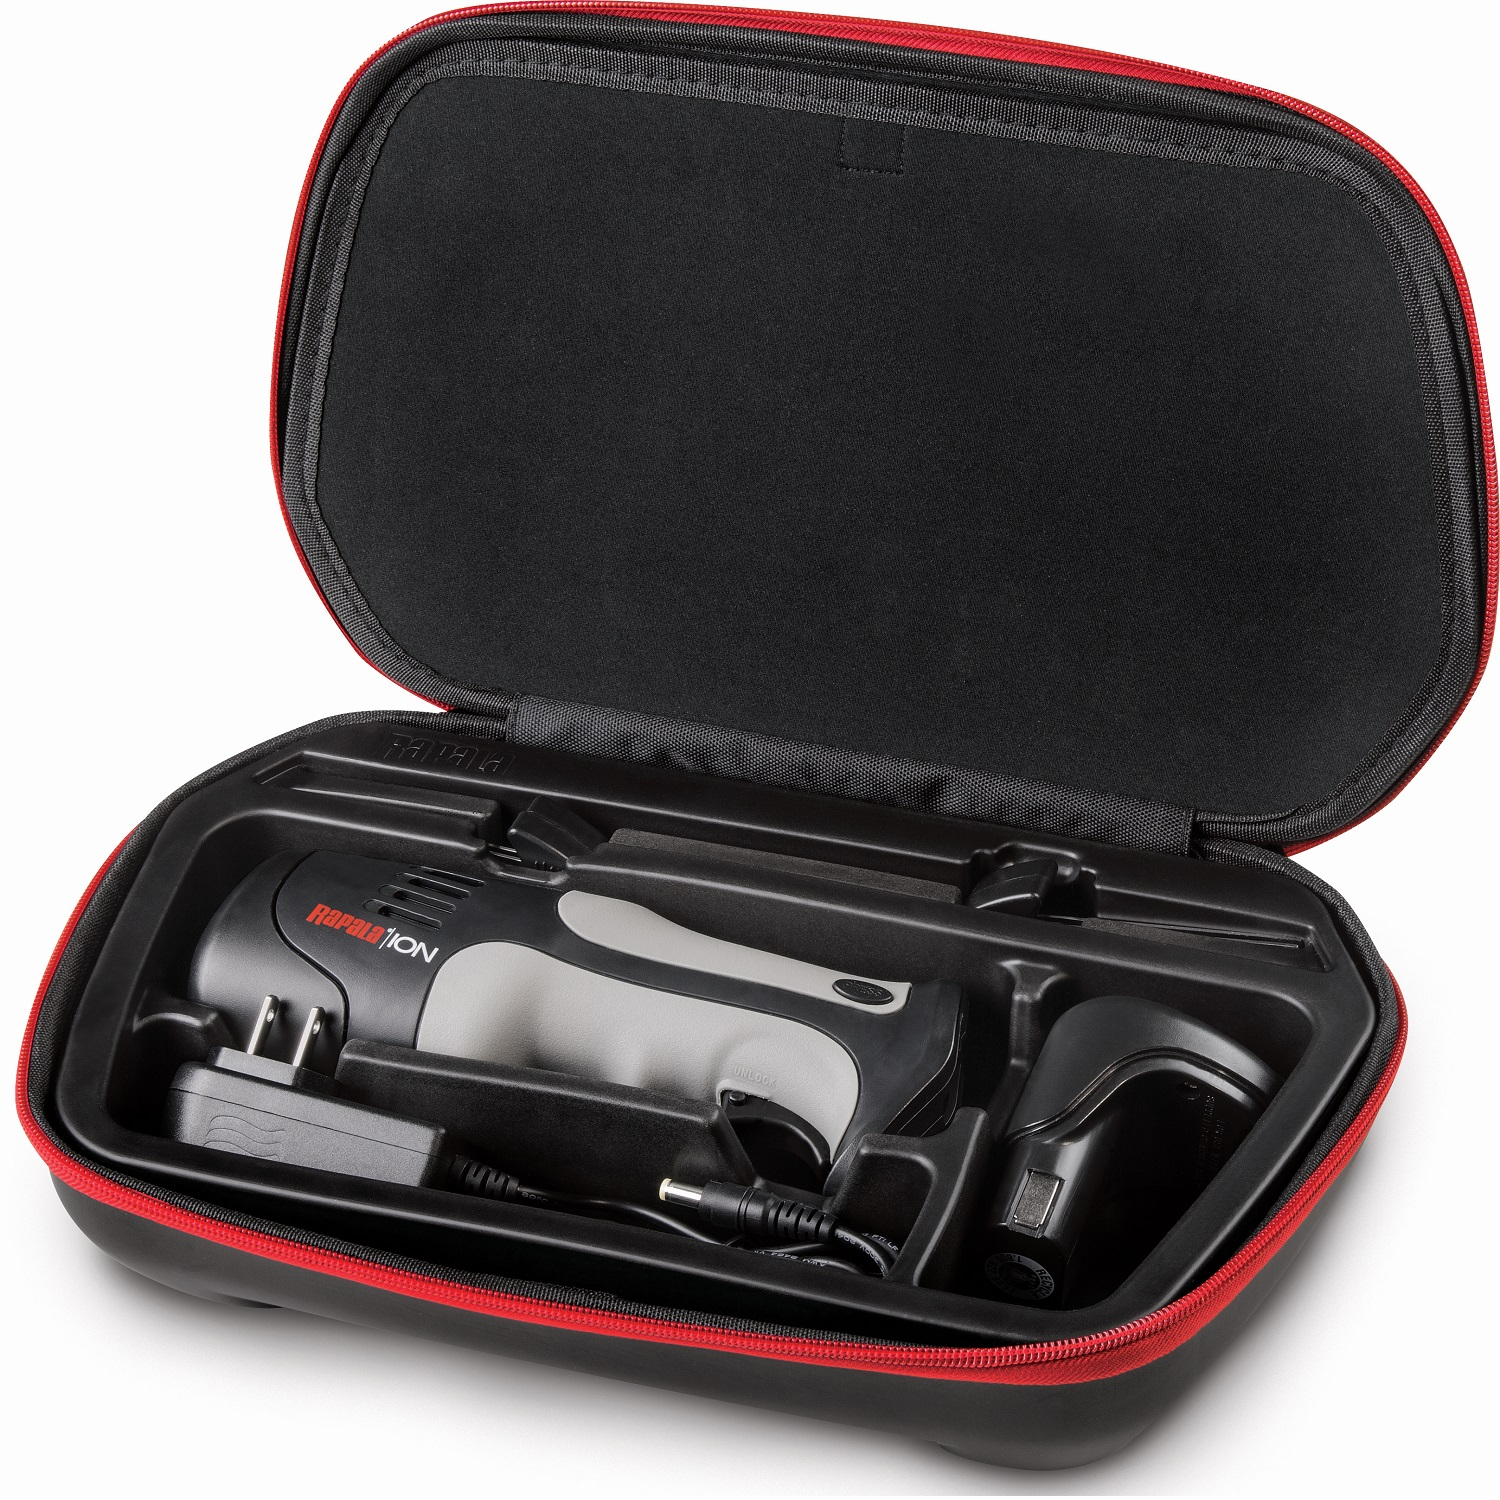 Rapala Lithium Ion Cordless Fillet Knife Combo w/Two Blades